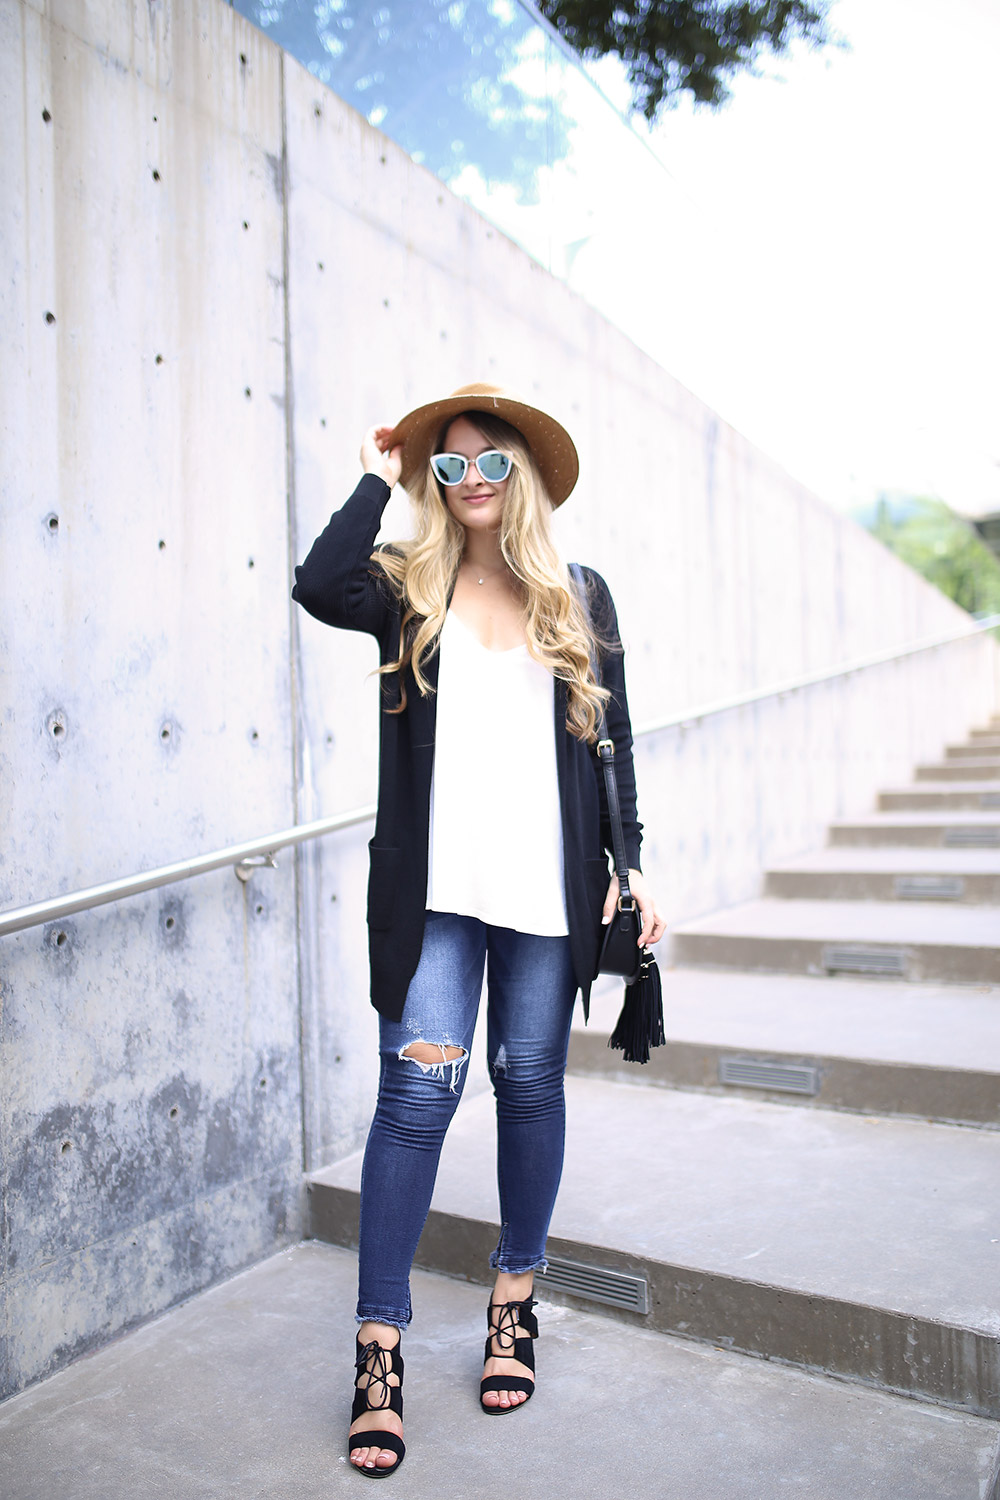 Affordable black cardigan for cool summer day _ Nordstrom sale black cardigan for fall _ Cozy black cardigan